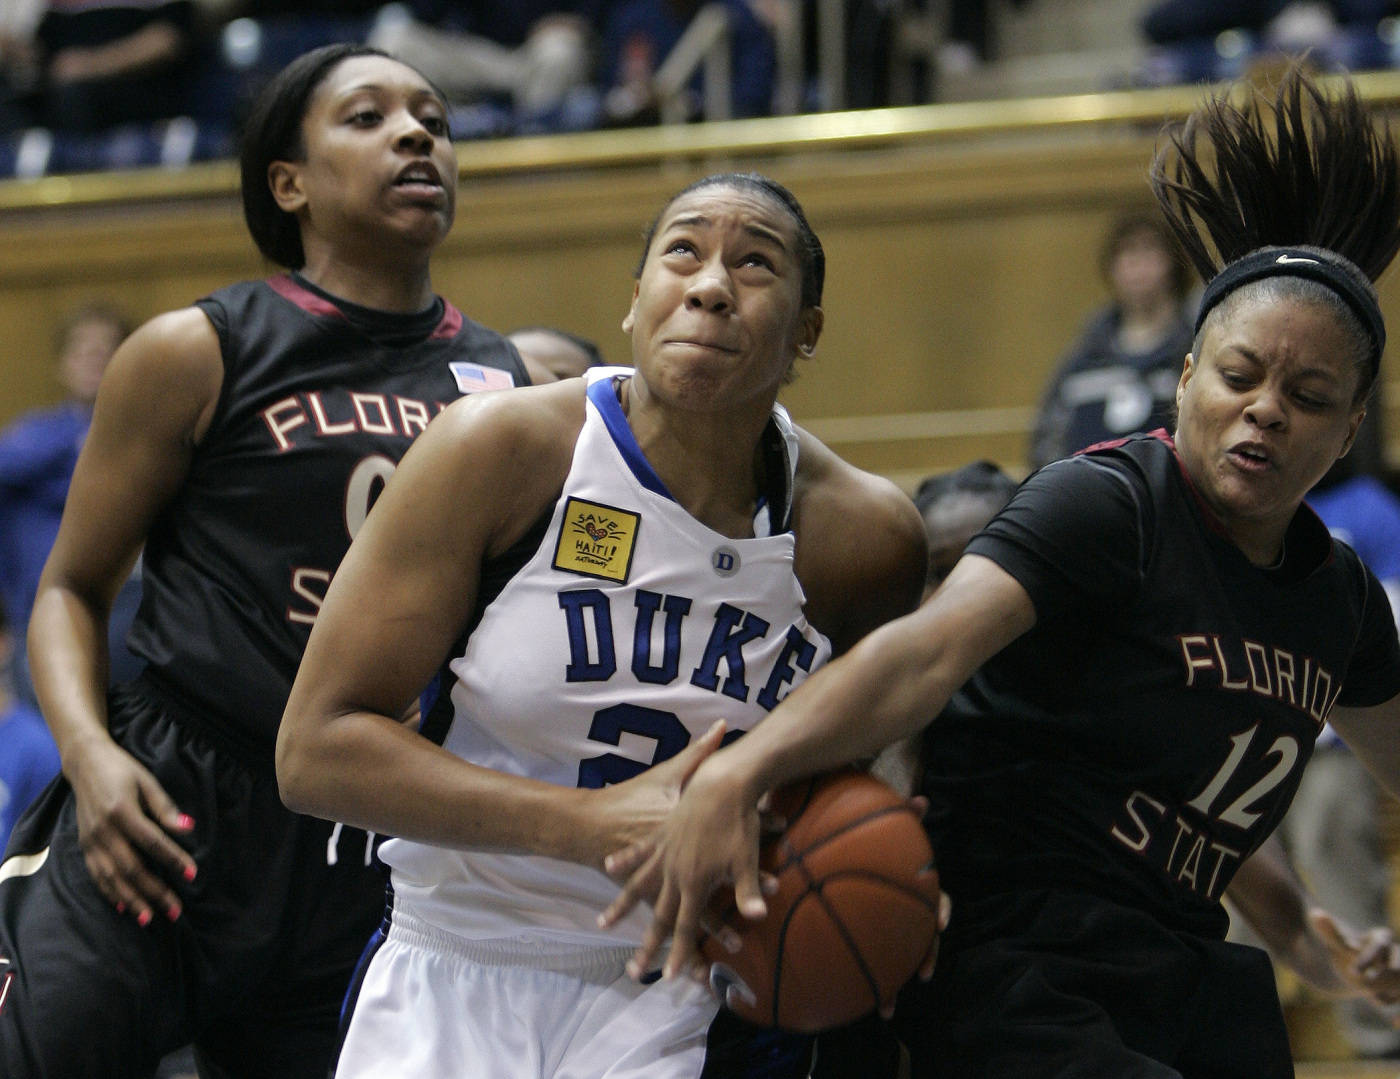 Duke's Joy Cheek drives to the basket as Florida State's Chasity Clayton and Courtney Ward defend.